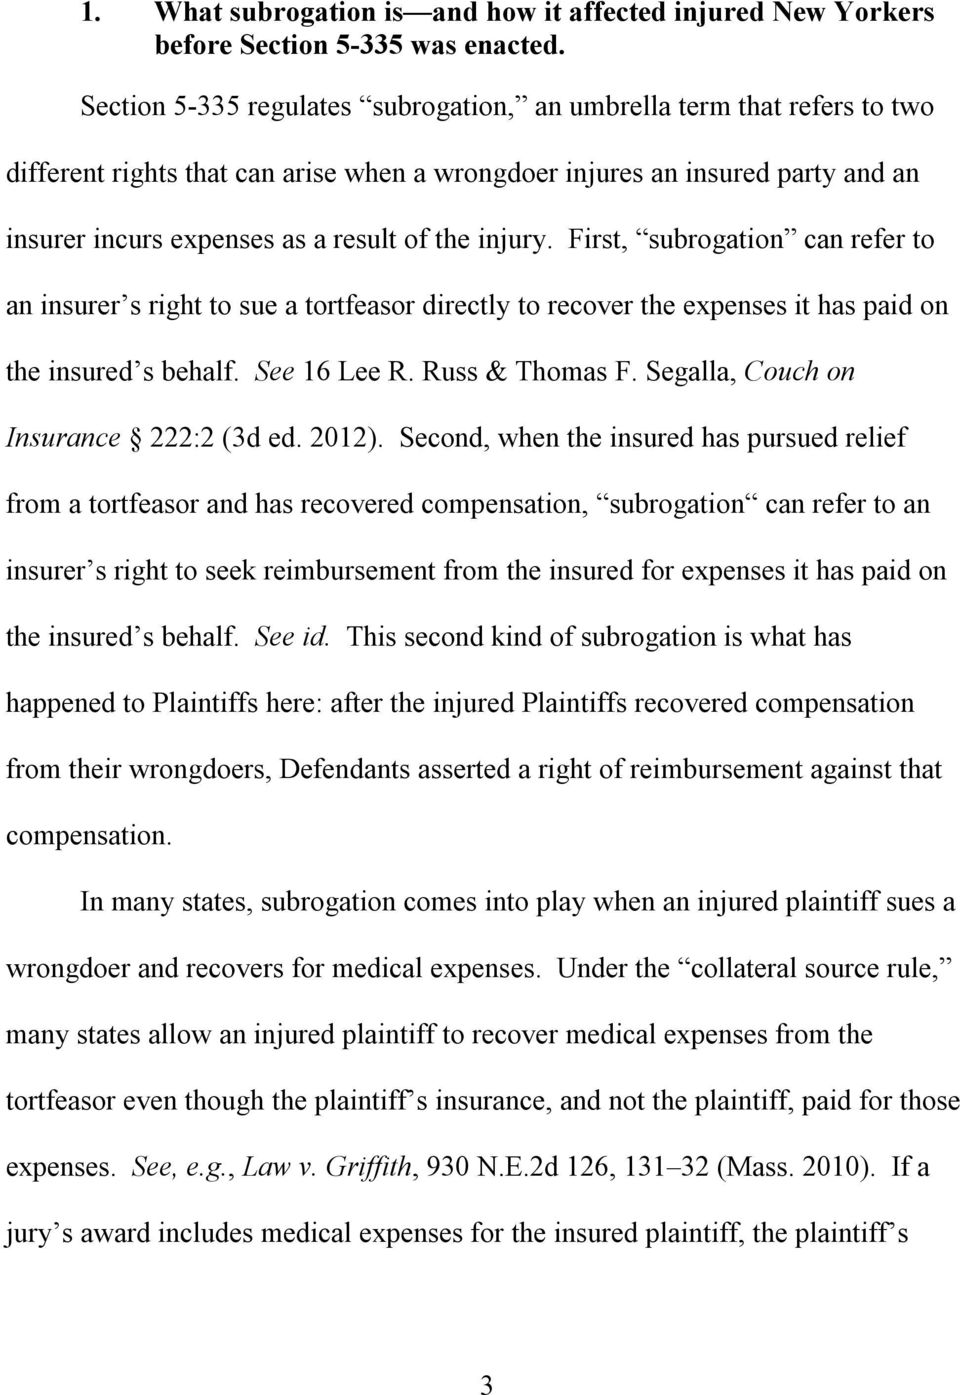 injury. First, subrogation can refer to an insurer s right to sue a tortfeasor directly to recover the expenses it has paid on the insured s behalf. See 16 Lee R. Russ & Thomas F.